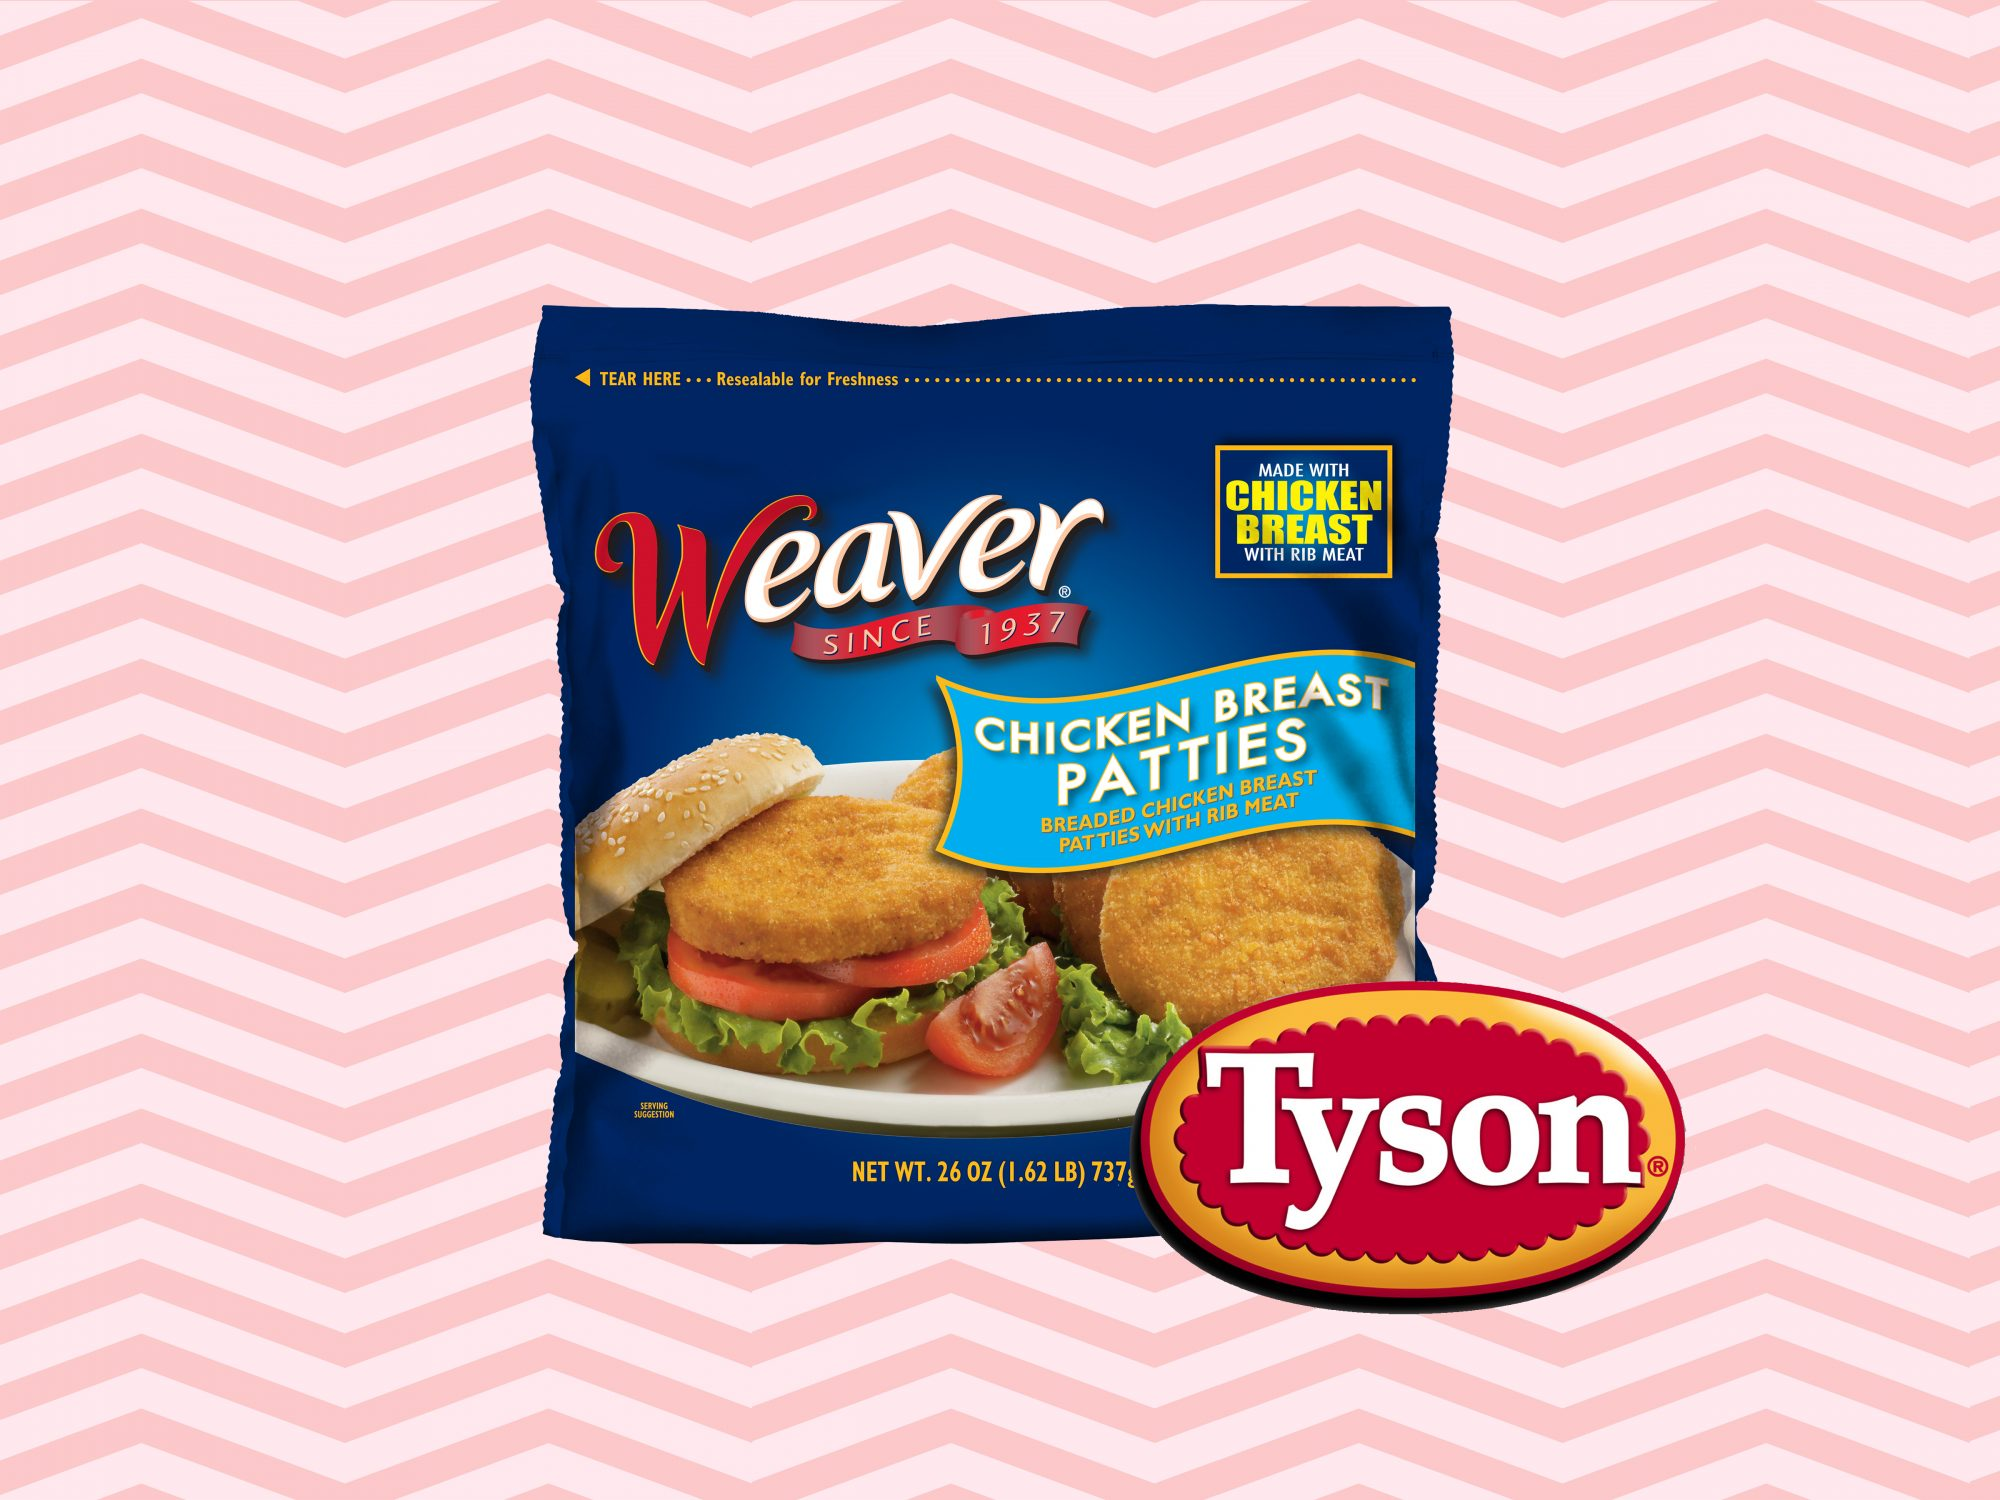 Tyson Just Recalled Nearly 40,000 Pounds of Chicken—Here's What You Need to Know